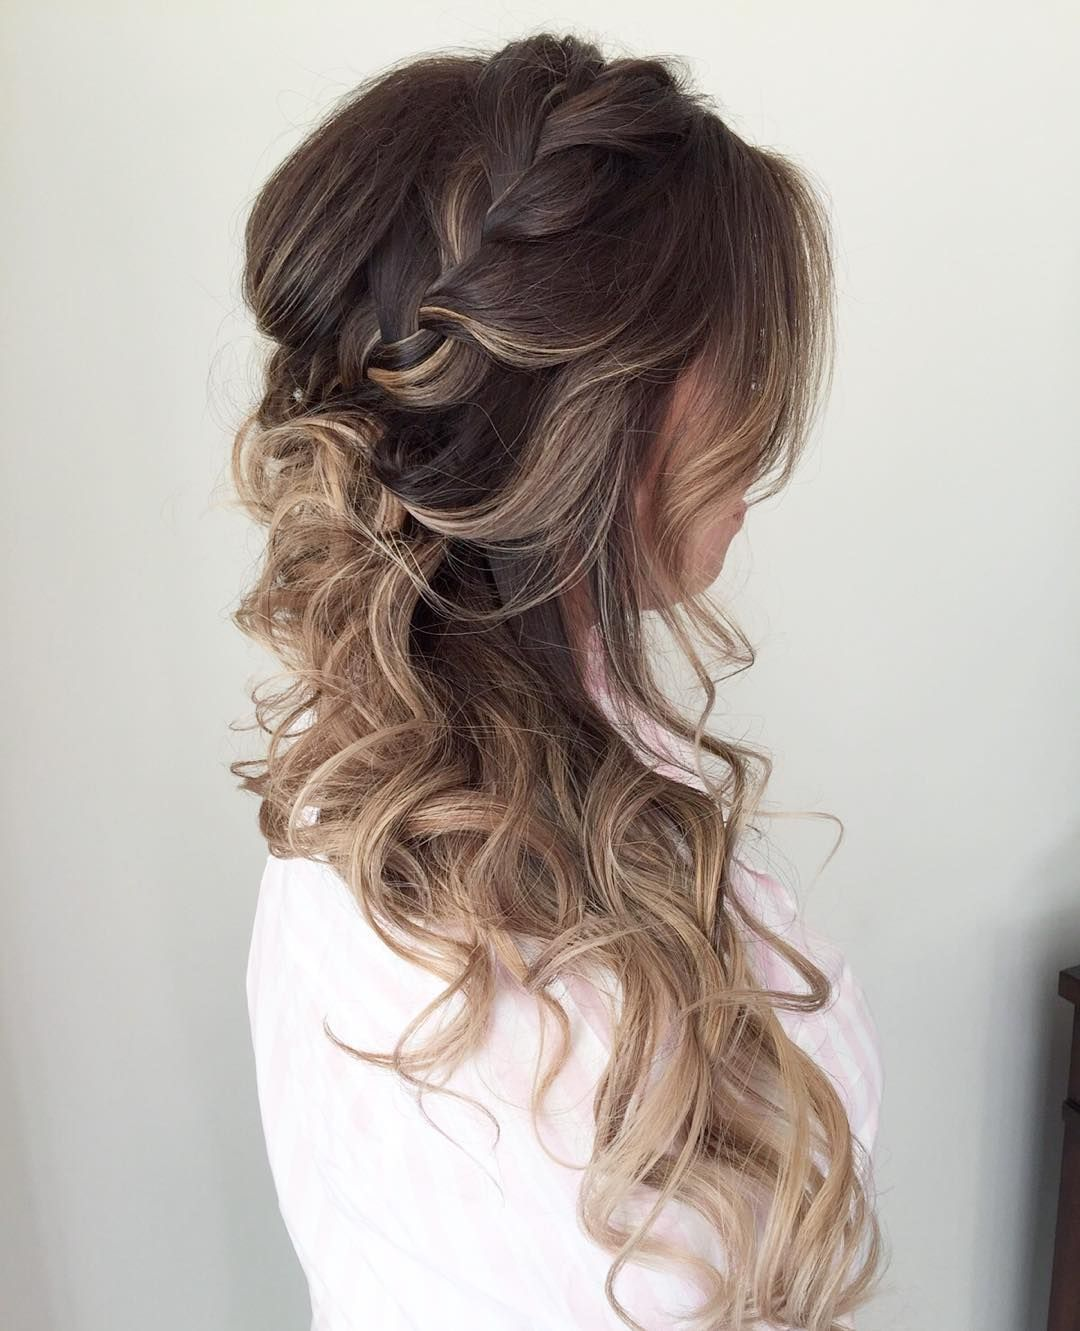 40 Picture Perfect Hairstyles For Long Thin Hair Long Thin Hair Wedding Hairstyles Thin Hair Braids For Long Hair